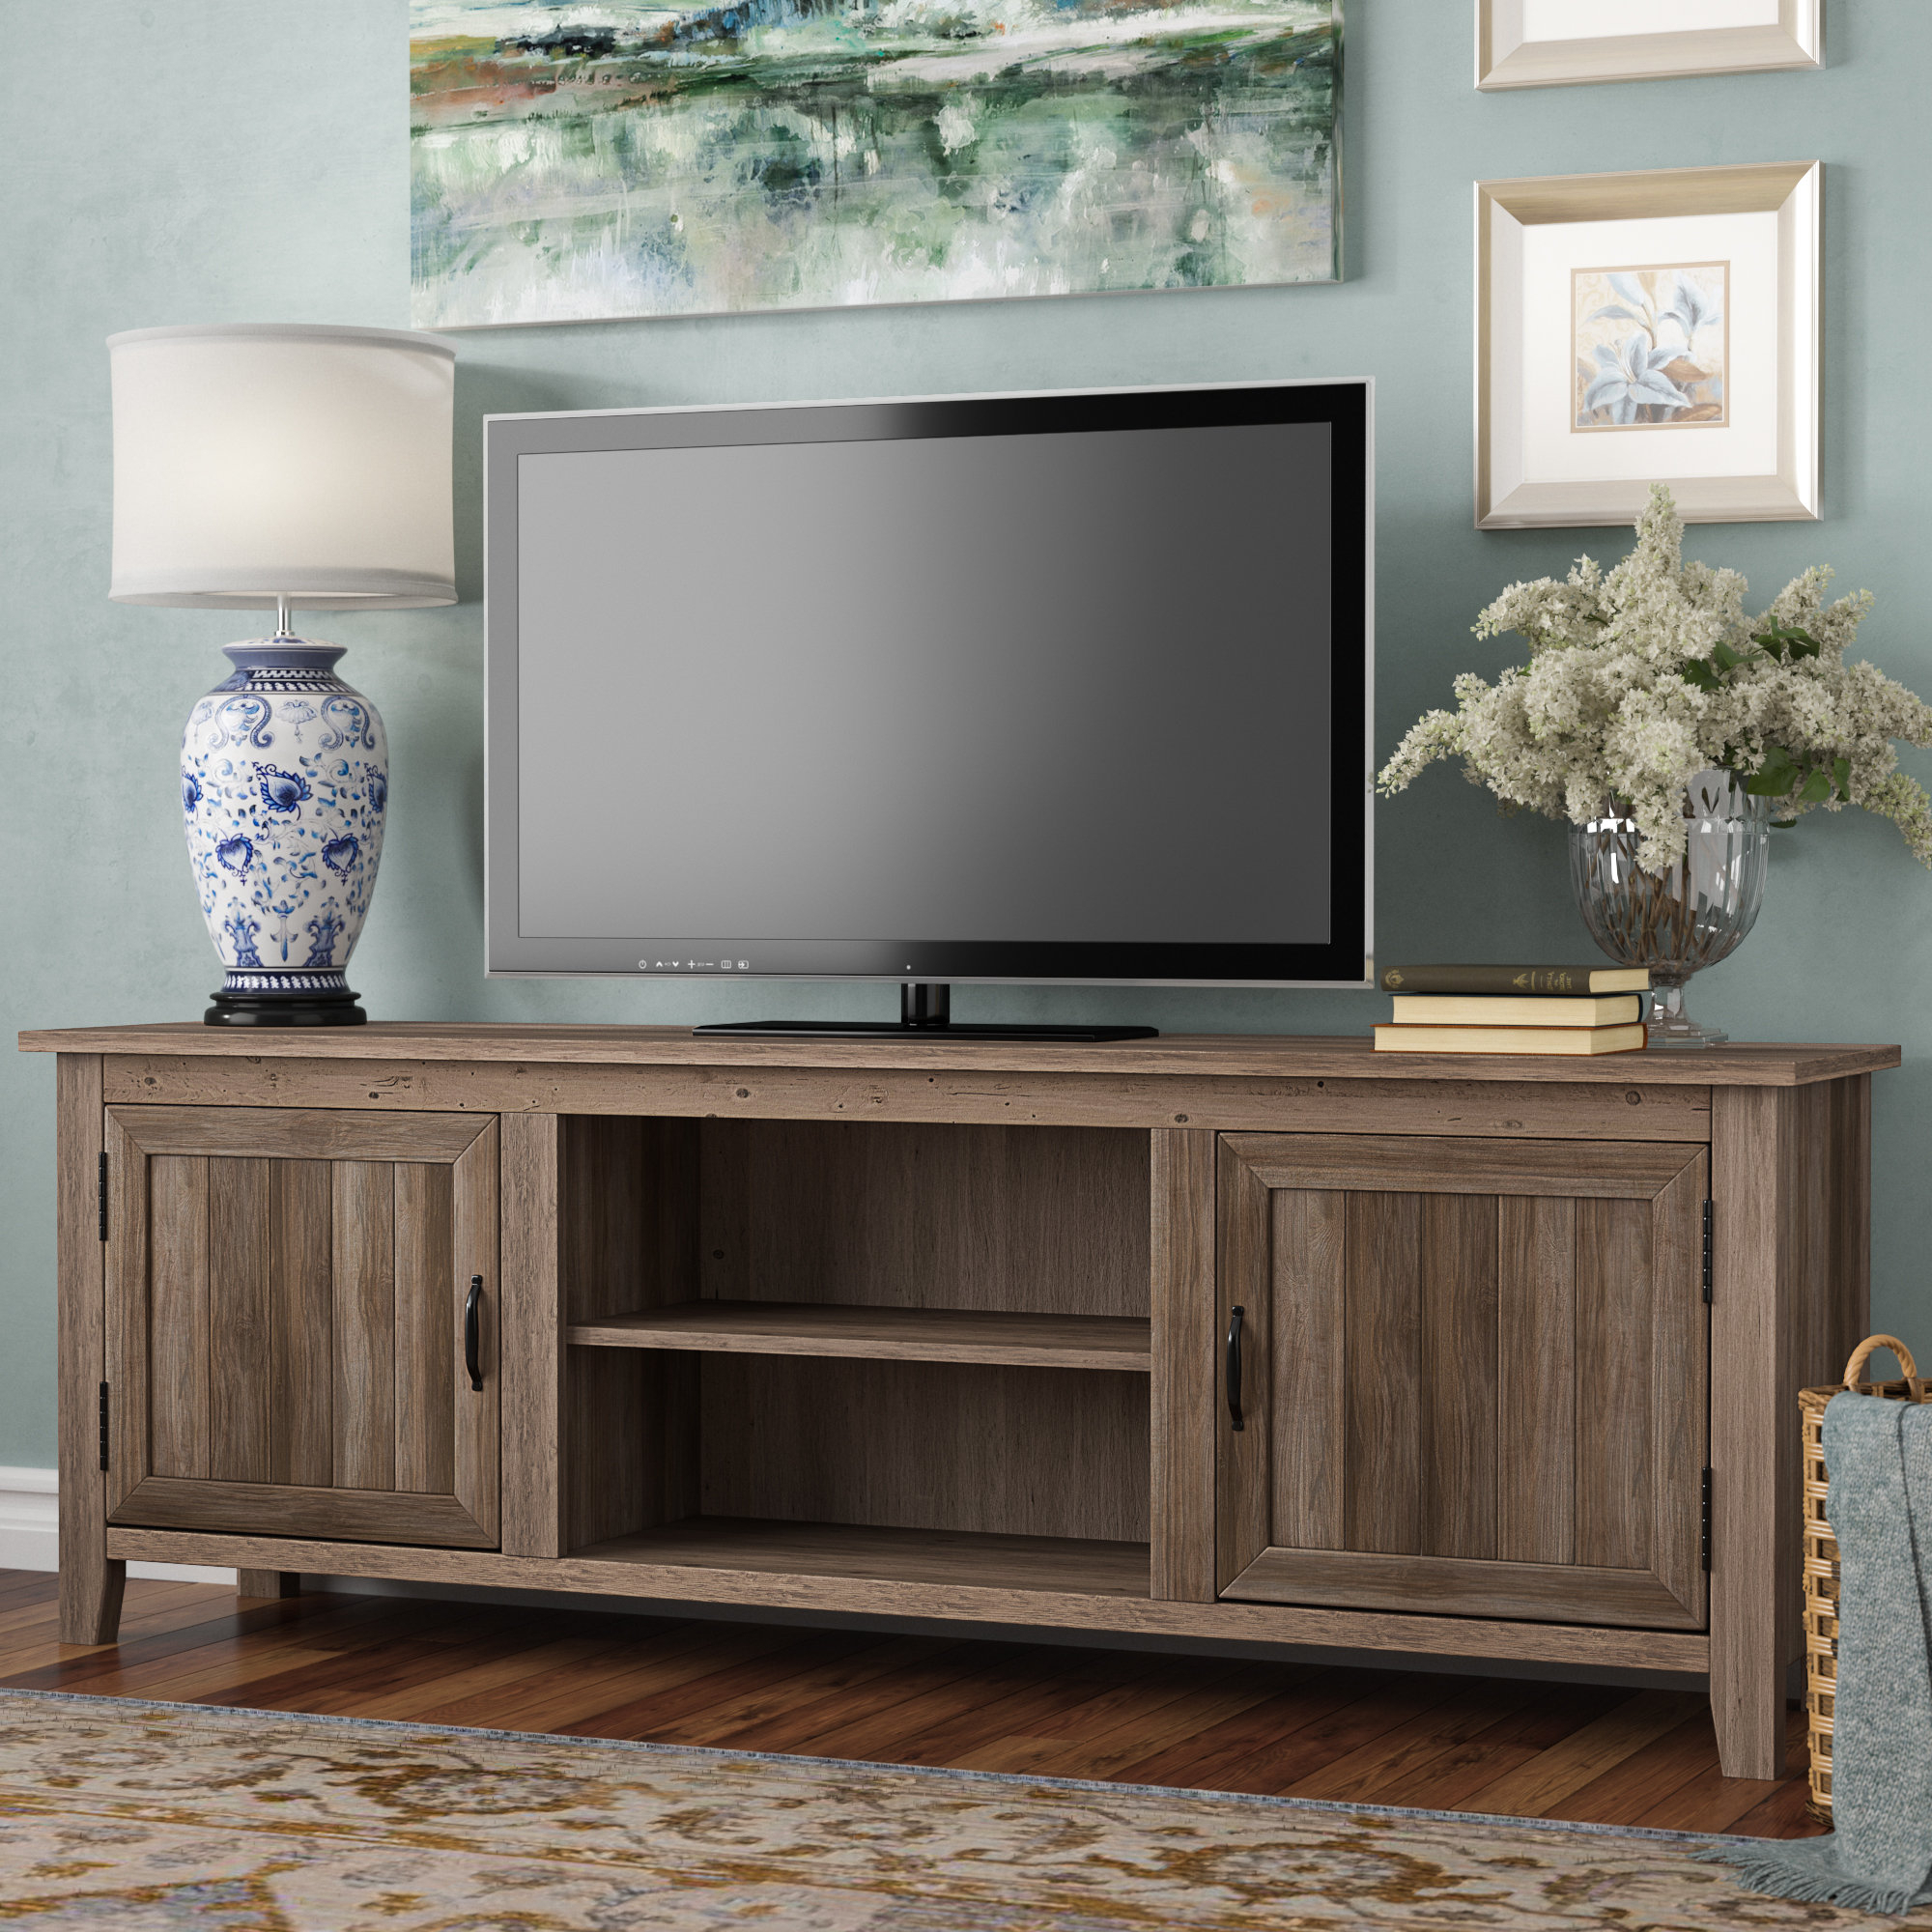 Birch Lane Pertaining To French Style Tv Cabinets (View 3 of 20)